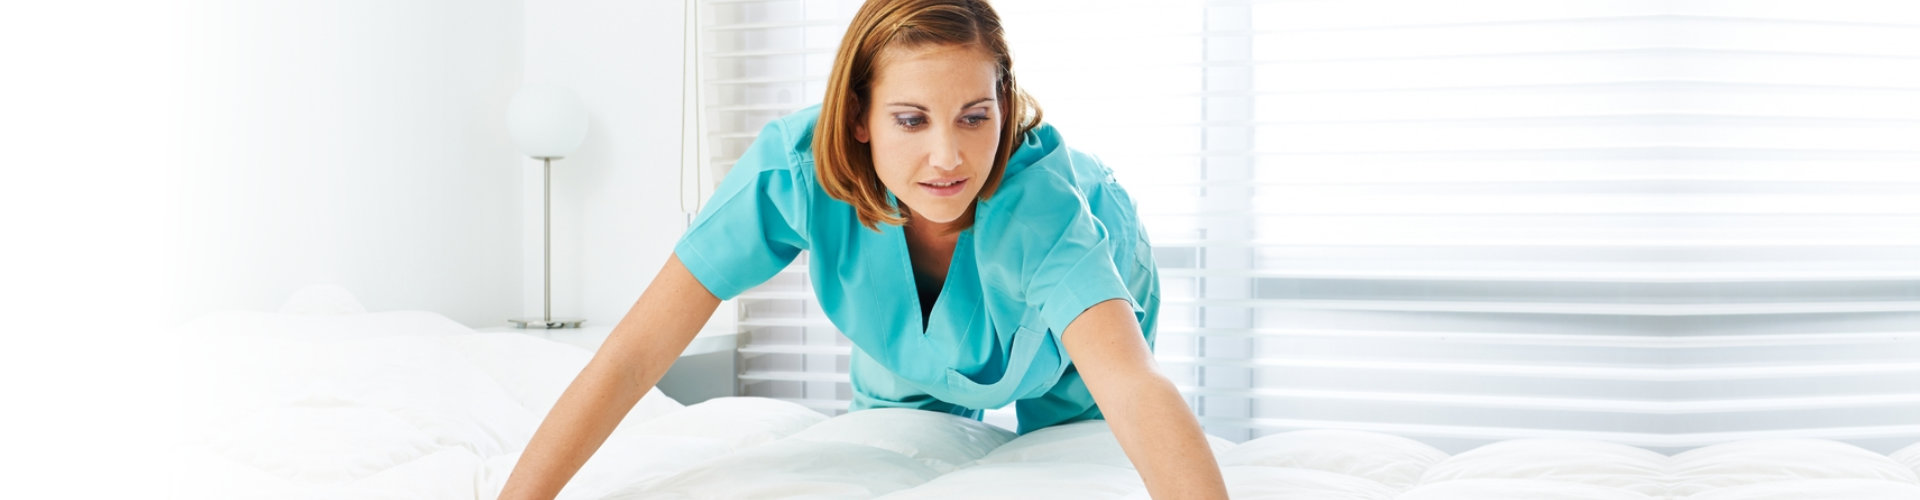 caregiver fixing the bed sheet